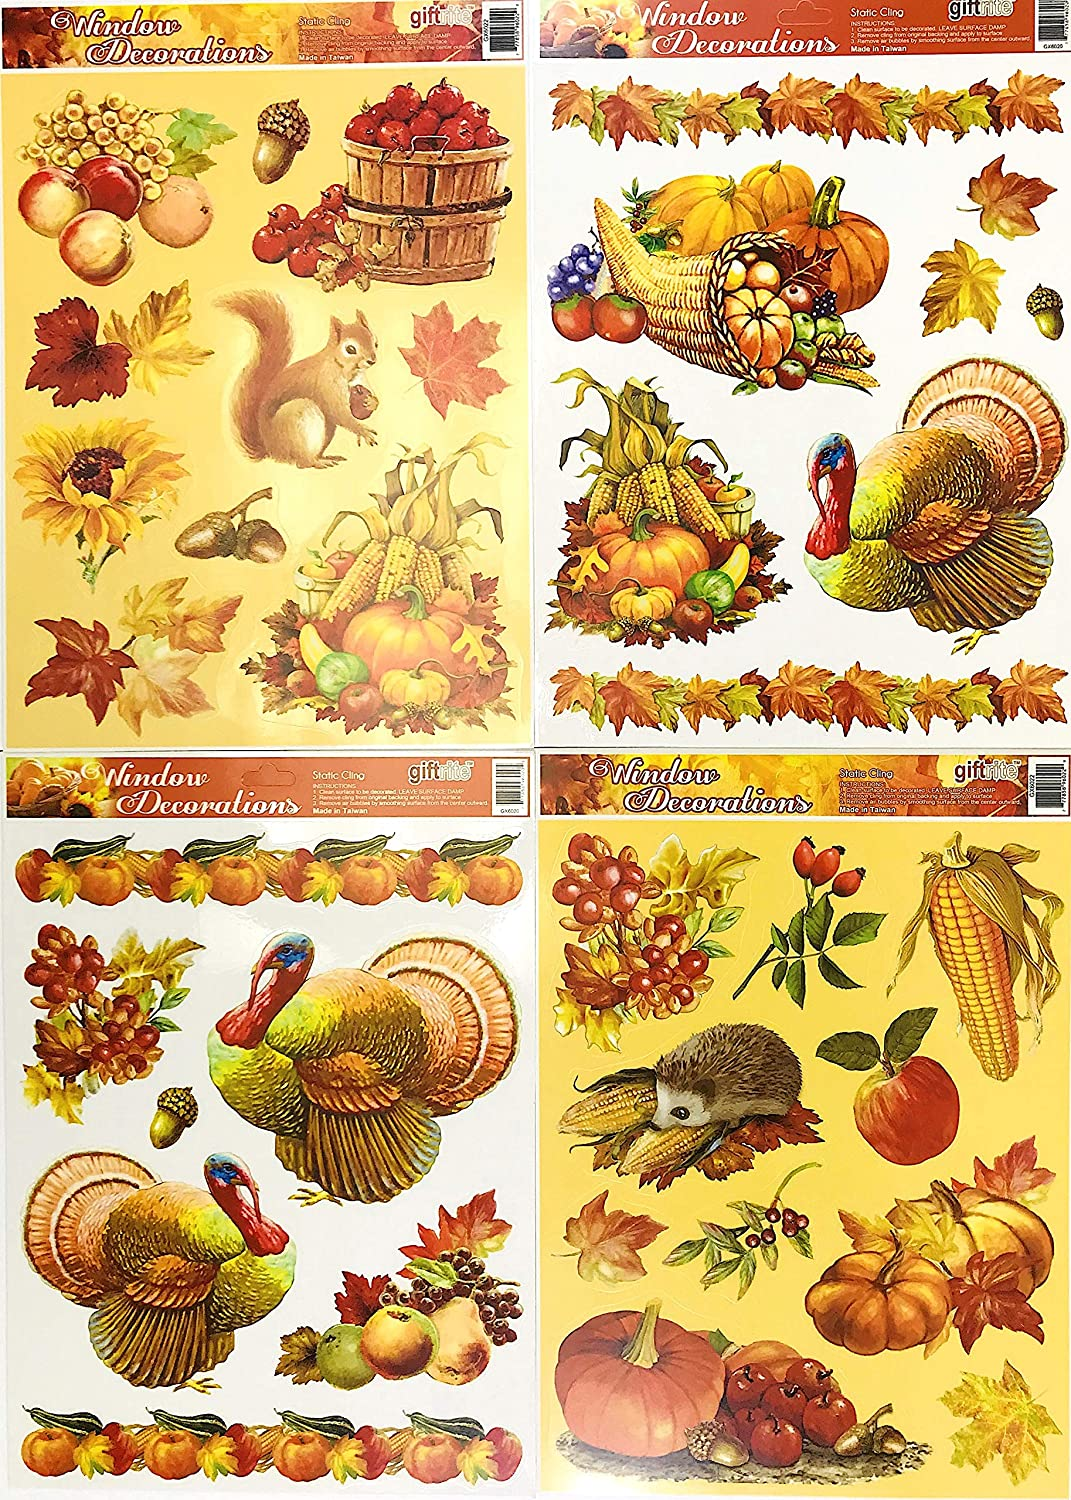 Fall Harvest Vinyl Window Clings: Turkeys Hedgehog Squirrel Pumpkins Apples Leaves and More 4 Sheets (Fall Turkeys)